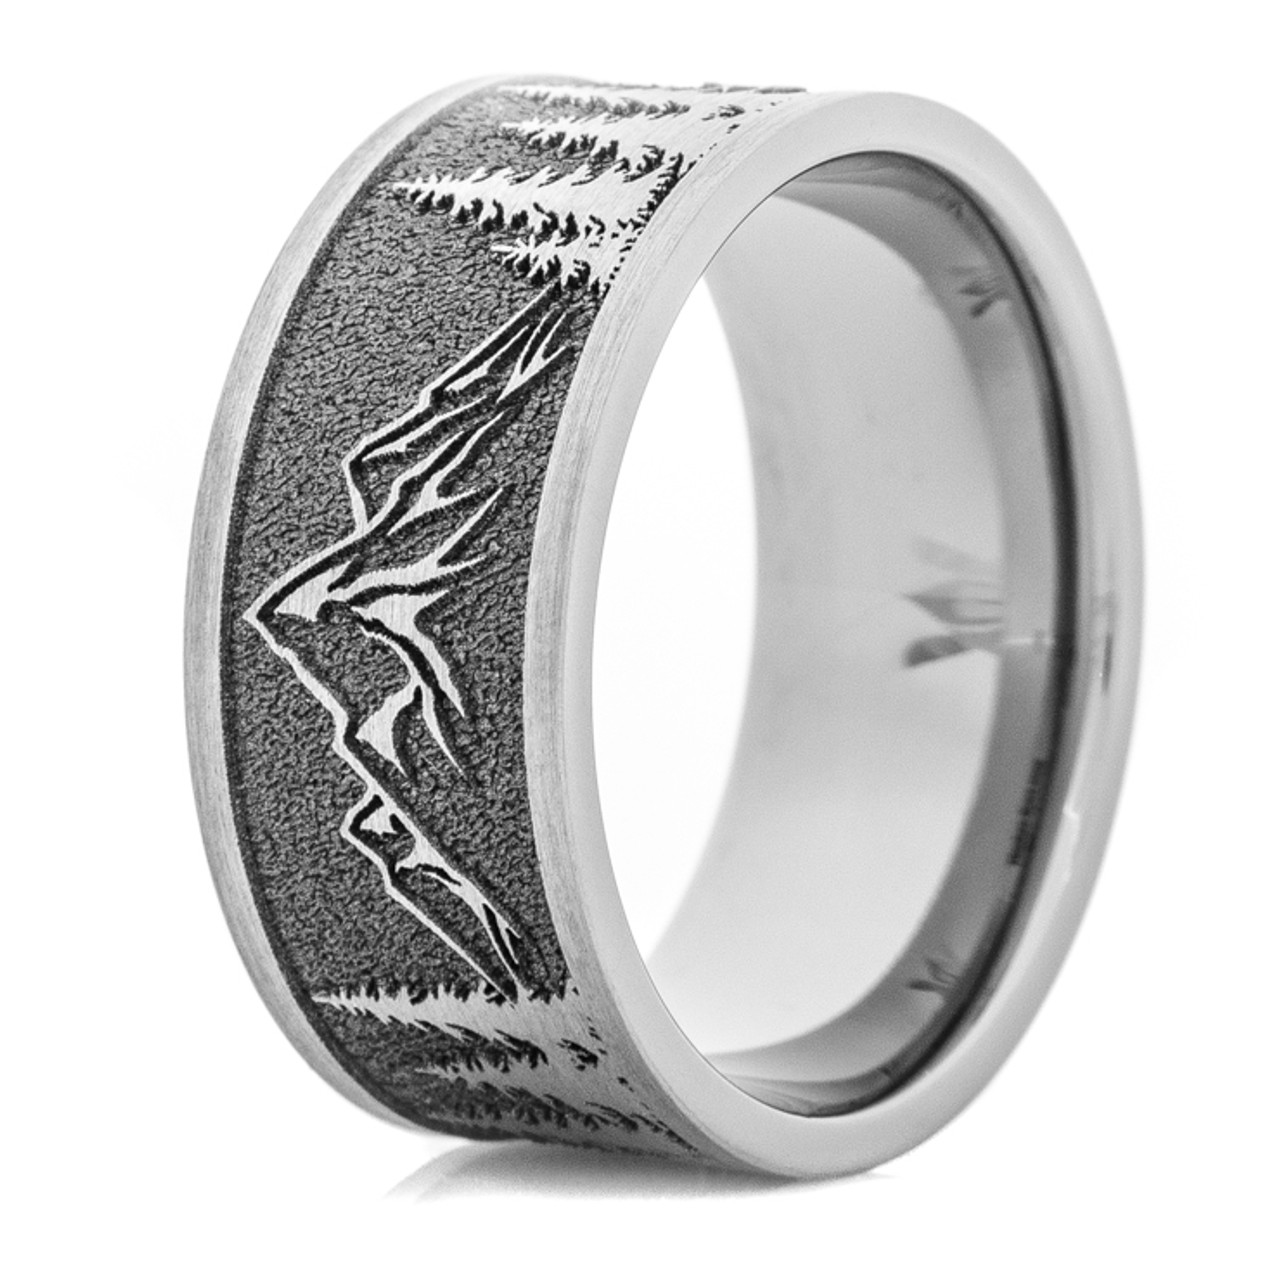 band mens tir with cz inlay ring resin bling wedding fj titanium bands linked jewelry